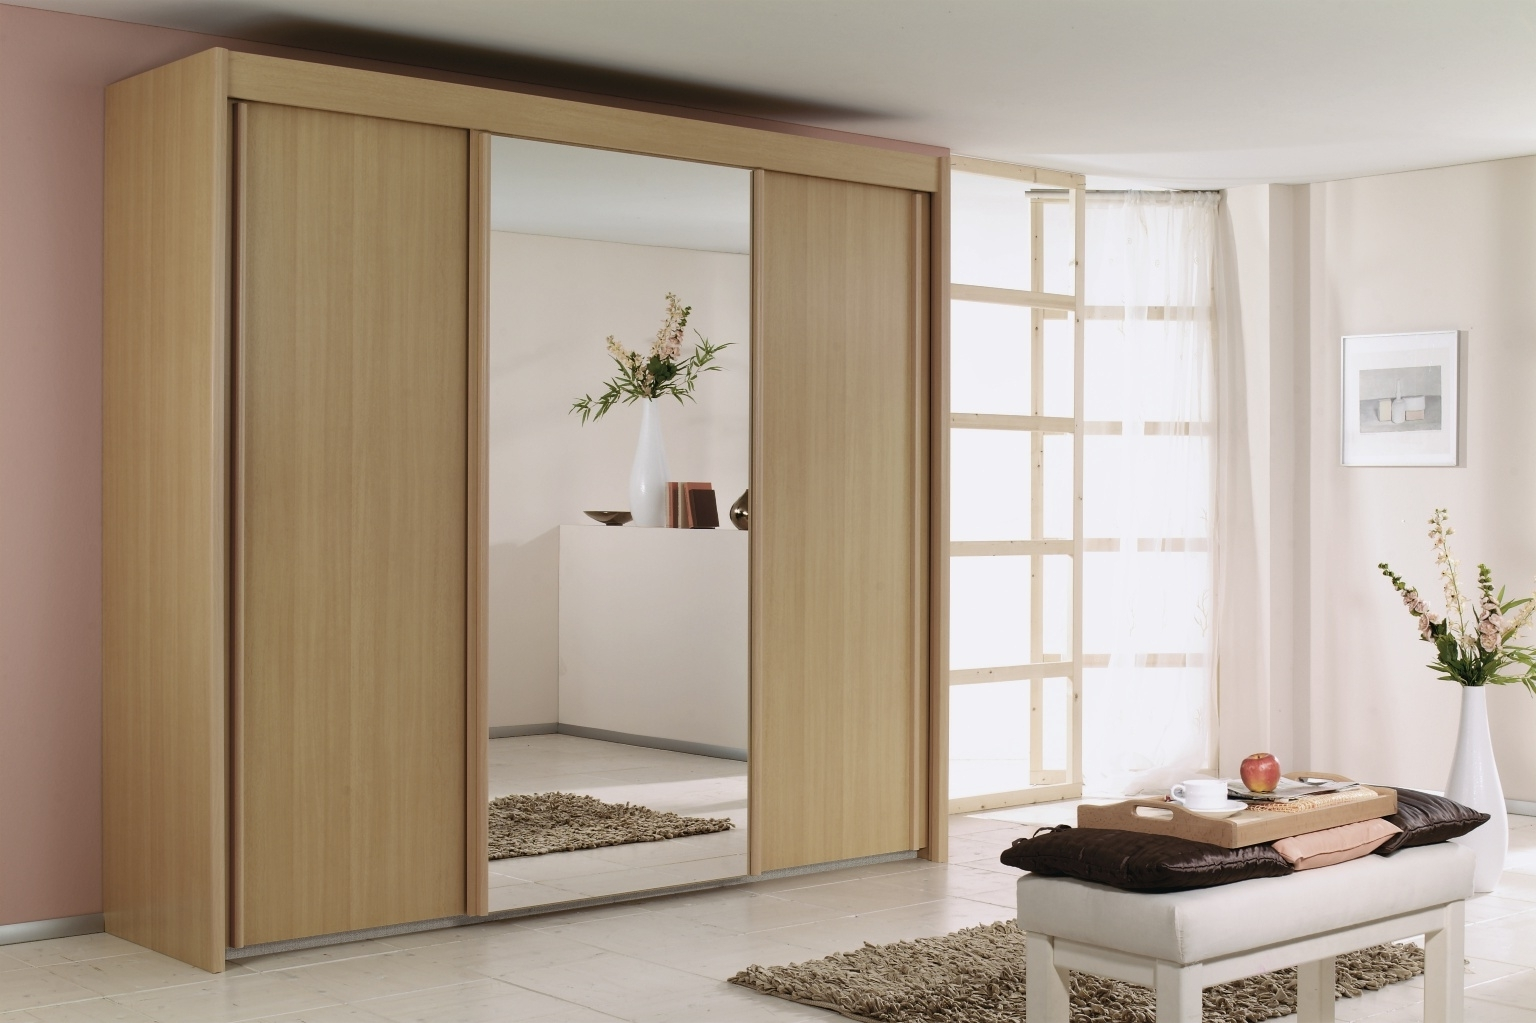 Imperial Wardrobes With Regard To Latest Rauch Imperial Sliding Wardrobe – Furniture Brothers (View 11 of 15)